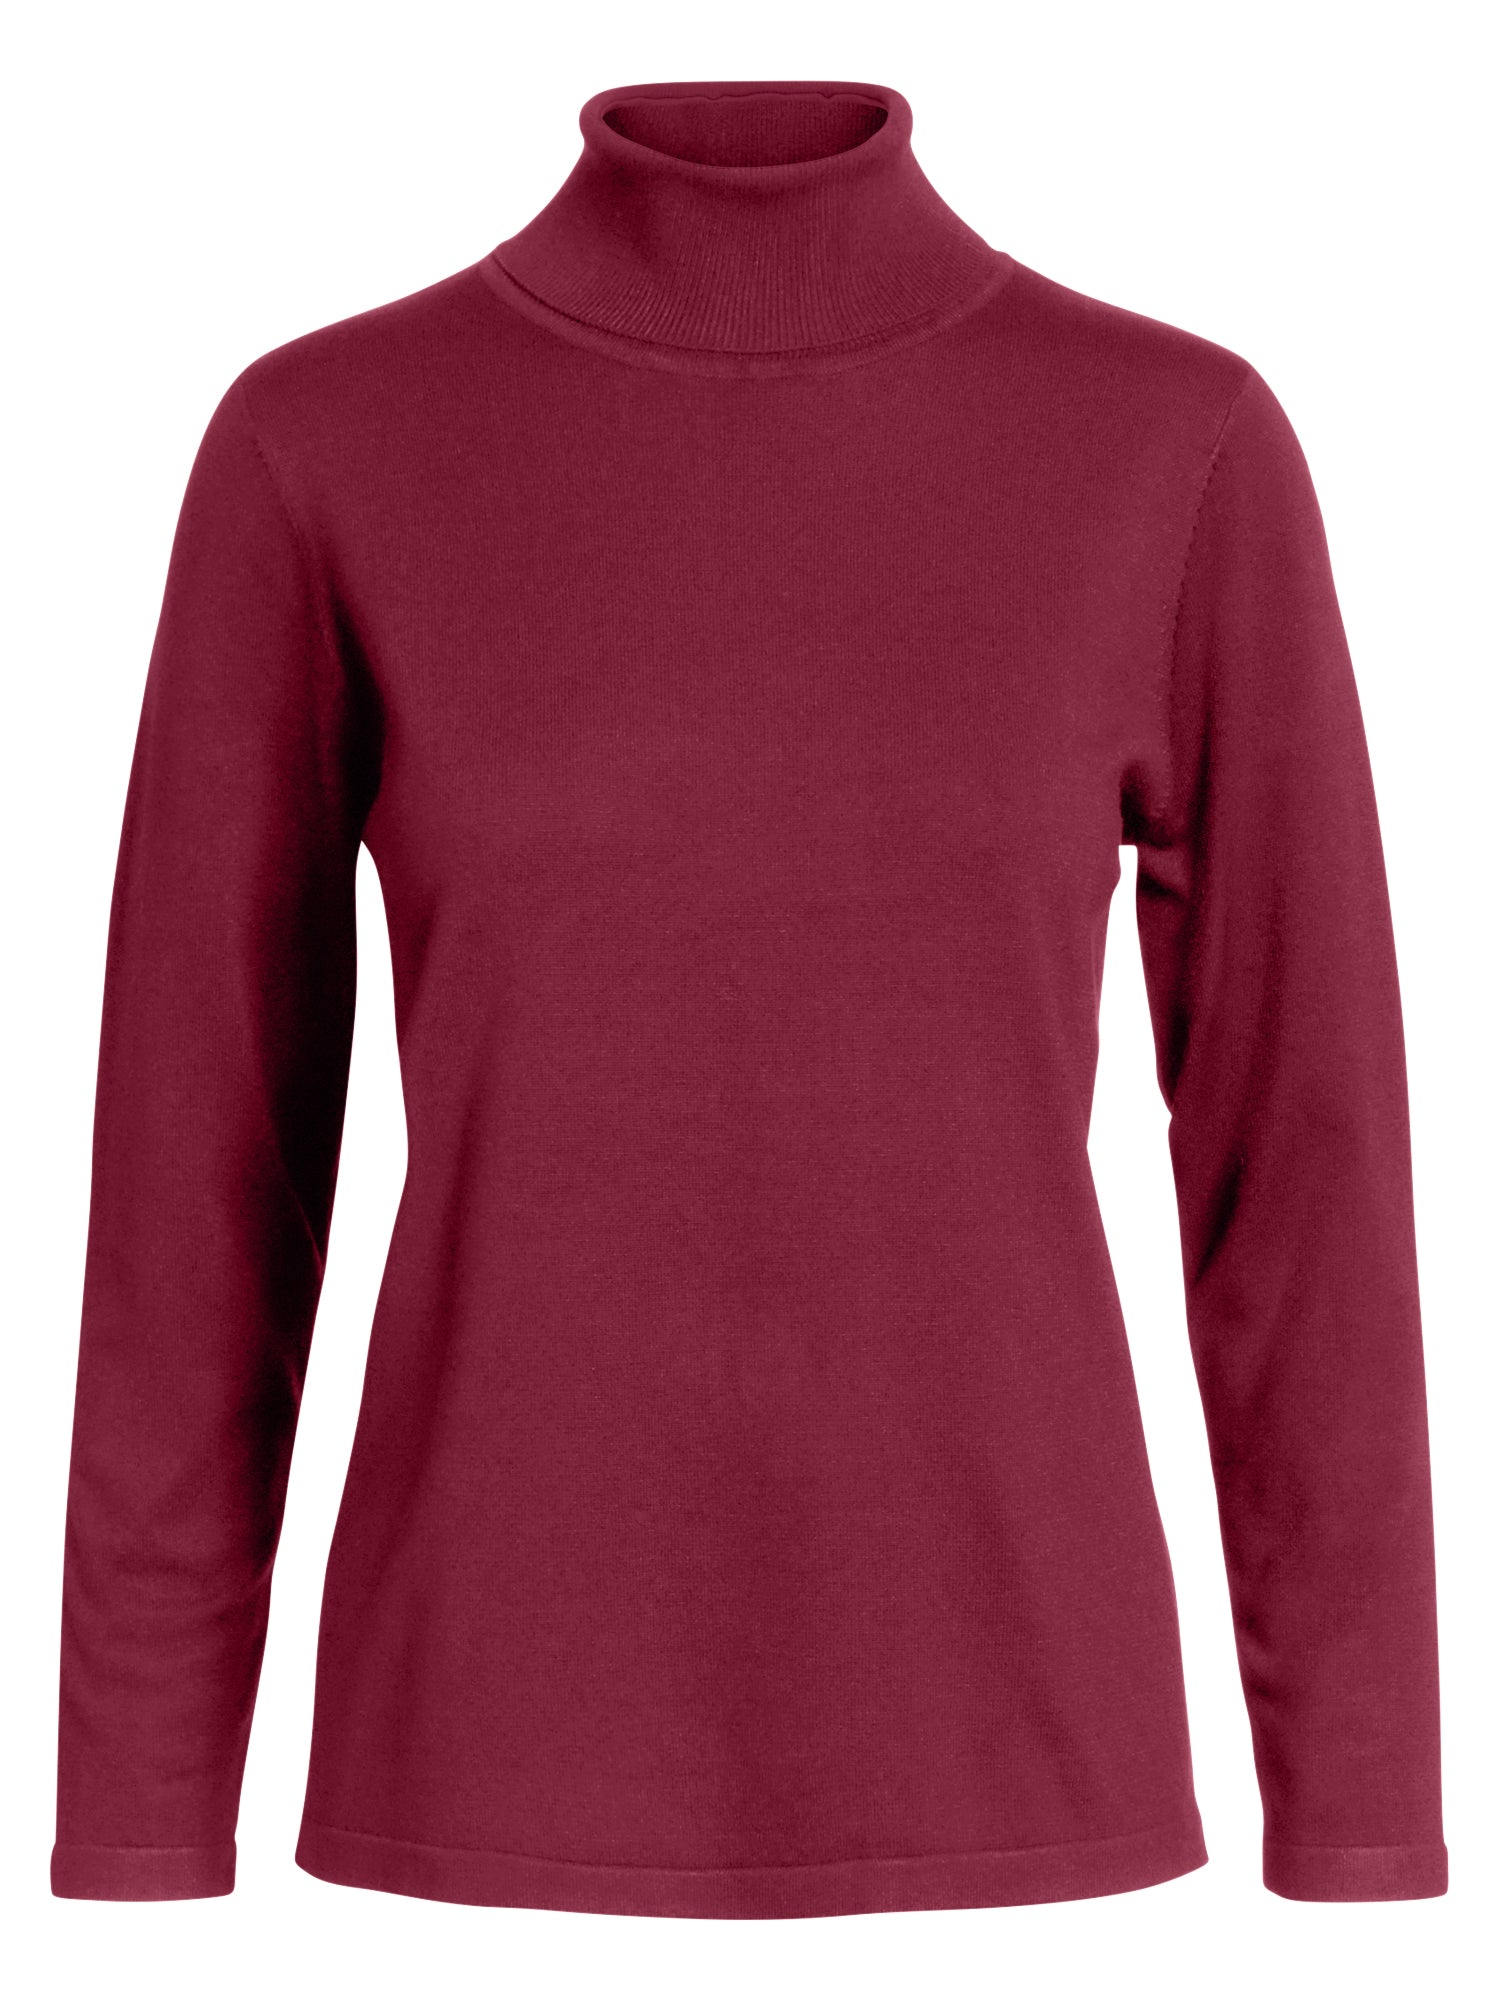 Image of   Pullover - Rumba Red